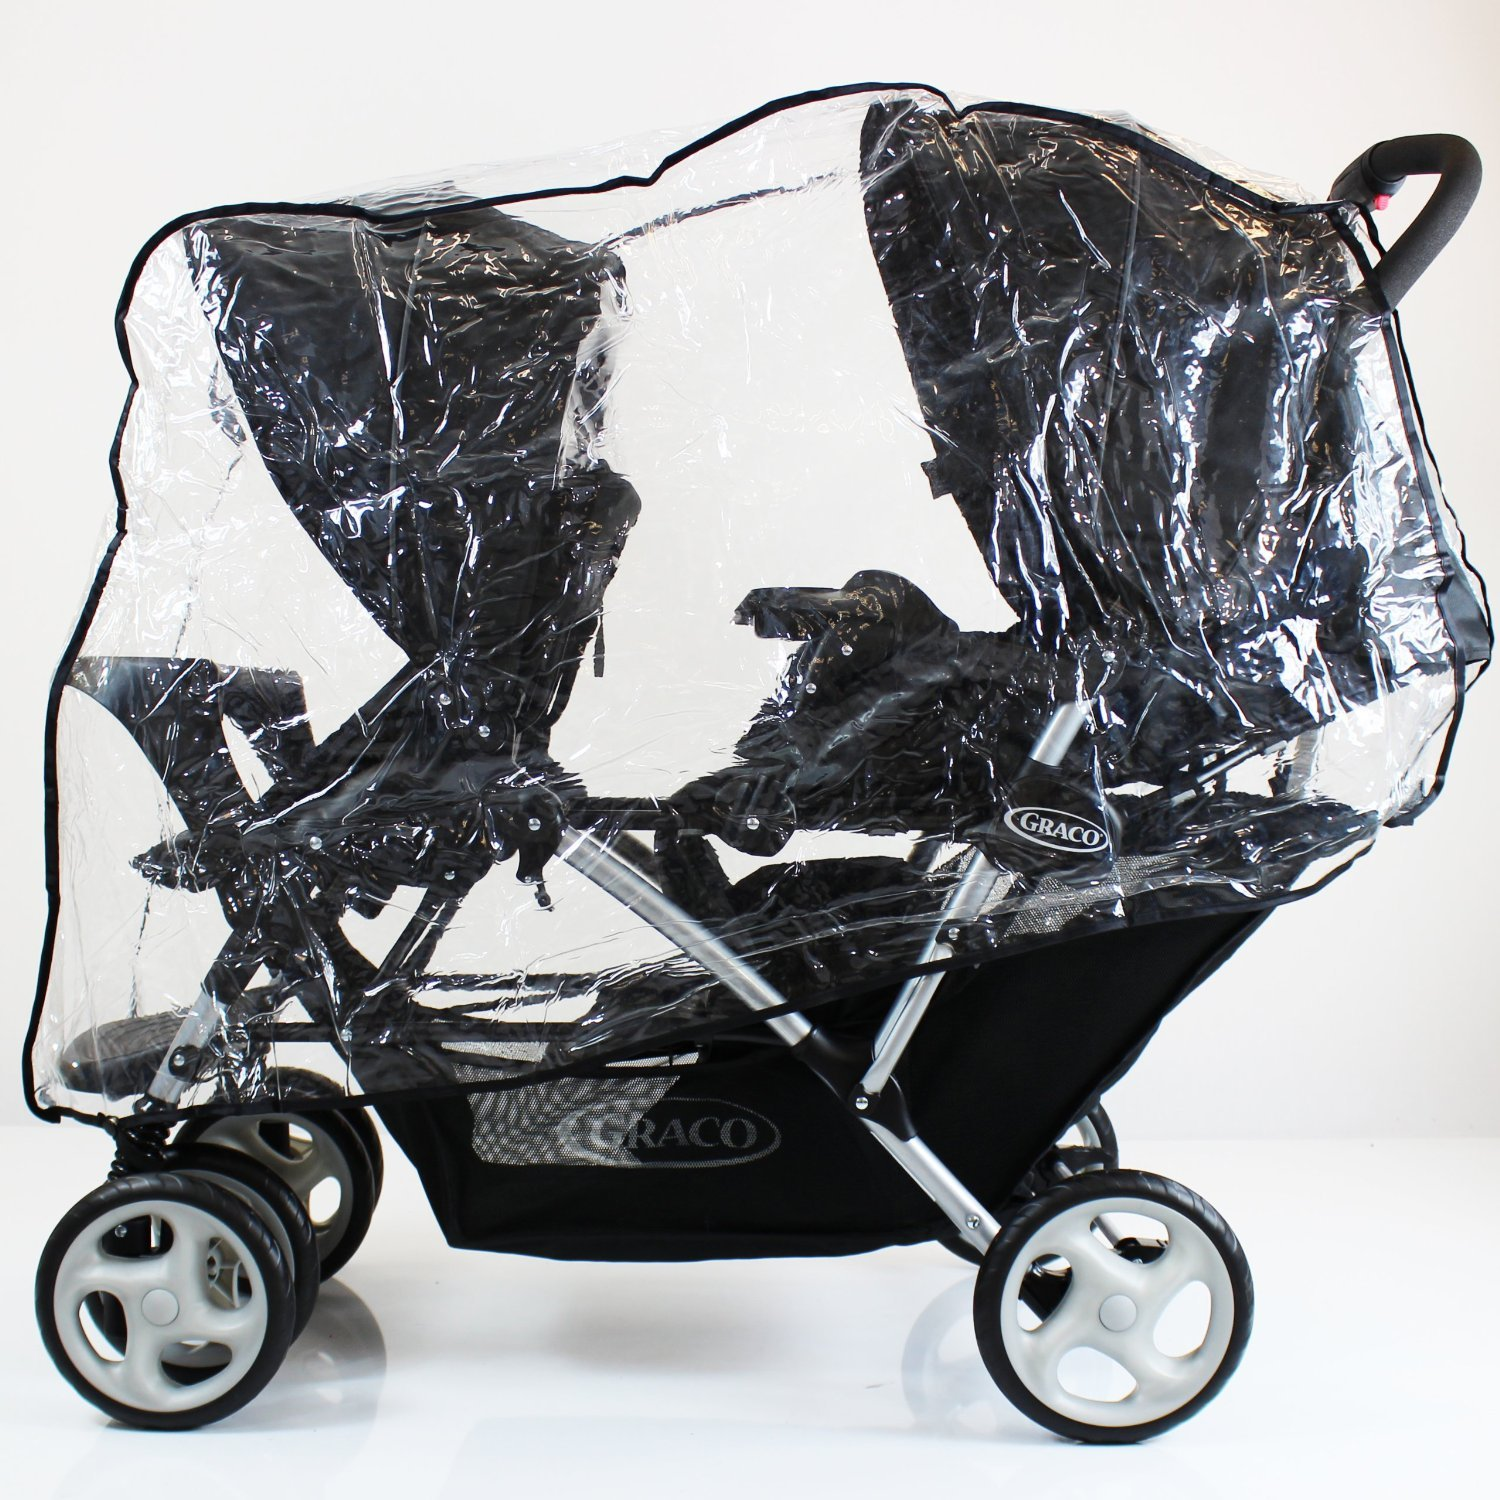 GRACO RAIN COVER STADIUM DUO TWIN TANDEM DOUBLE RAINCOVER (NEUTRAL) Baby Travel® Tandem Type RC